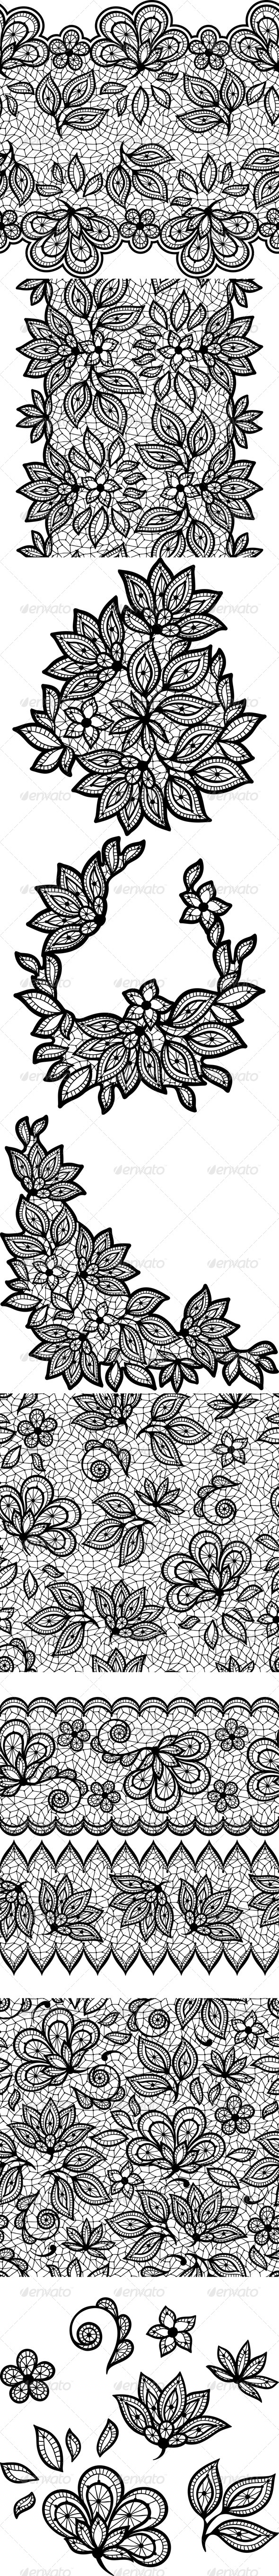 Black Lace Floral Designs and Seamless Patterns. - Flourishes / Swirls Decorative